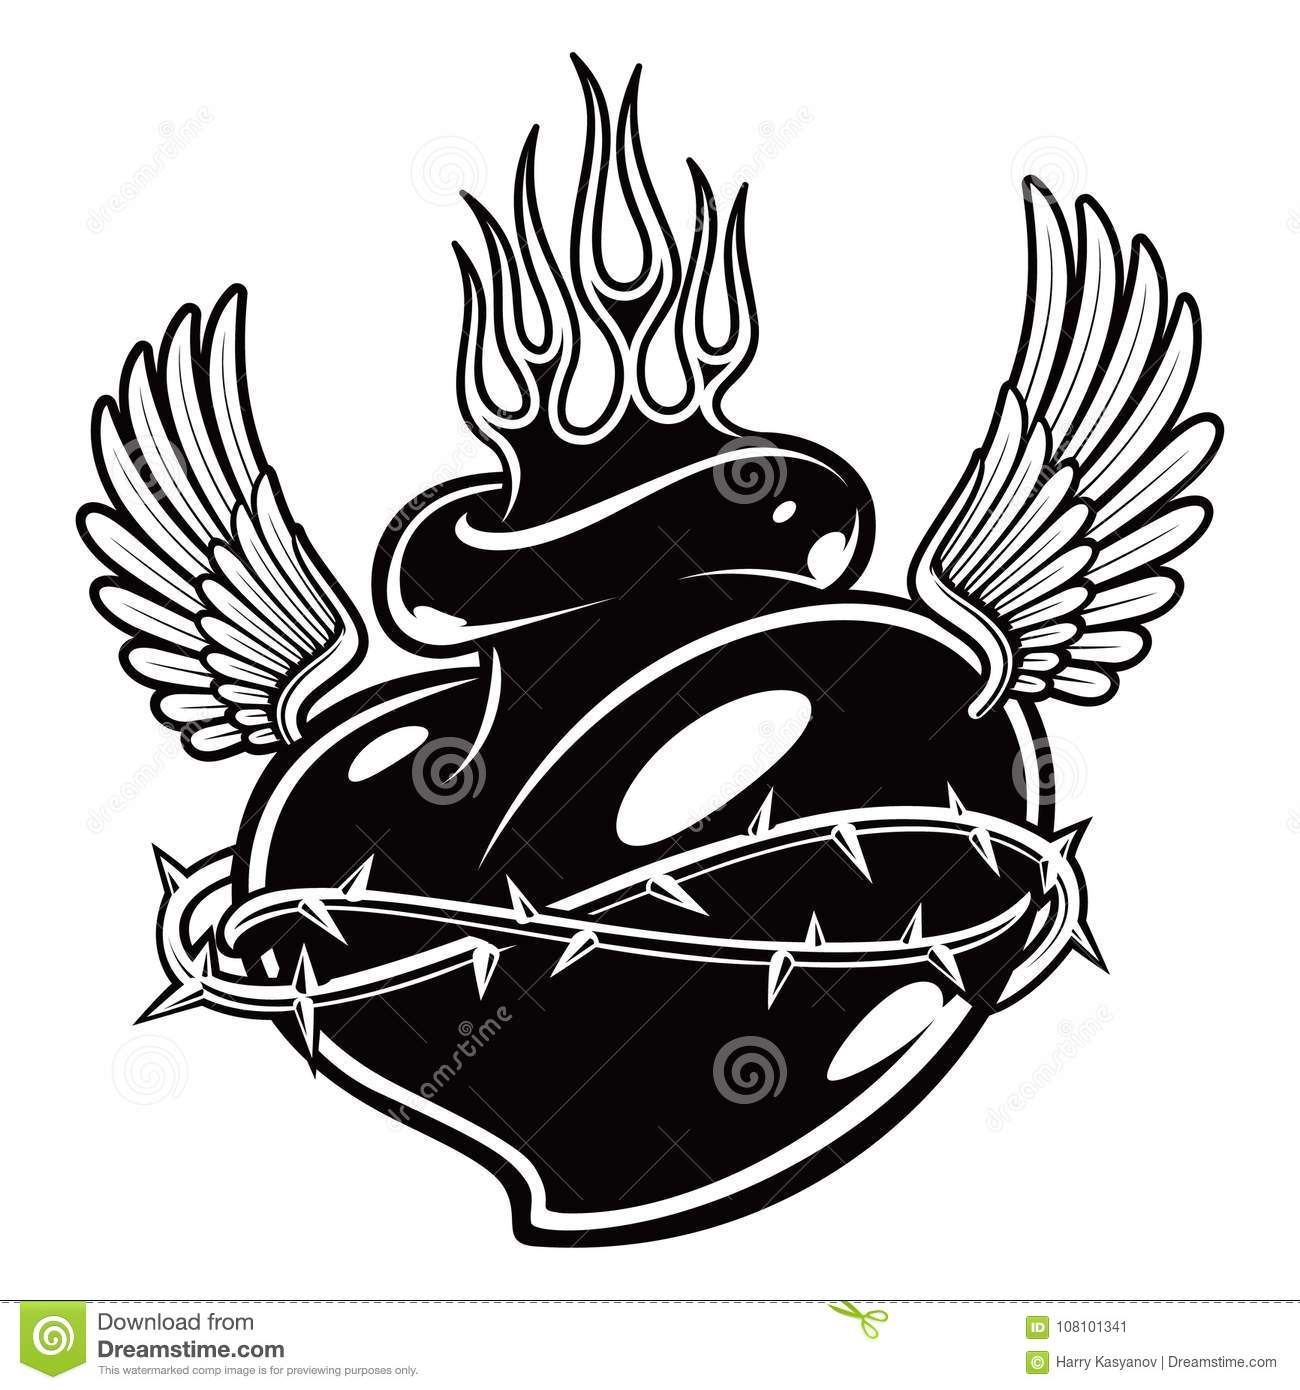 Tattoo Chicano Heart With Flames Monochrome Version Stock